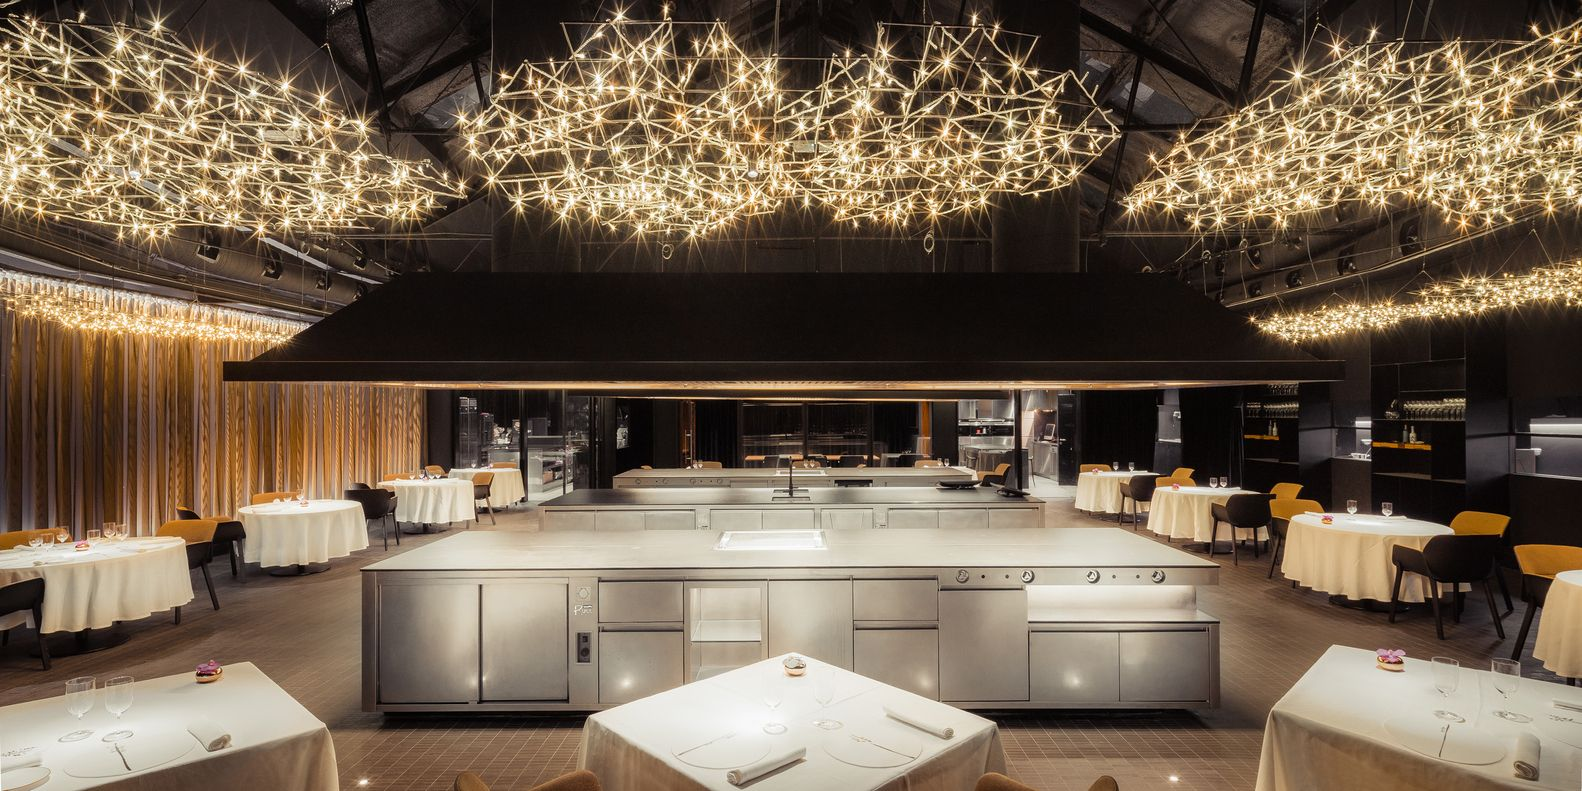 Gallery Of Cocina Hermanos Torres Restaurant Oab Office Of Architecture In Barcelona 8 Restaurant Pictures Architecture Restaurant Design